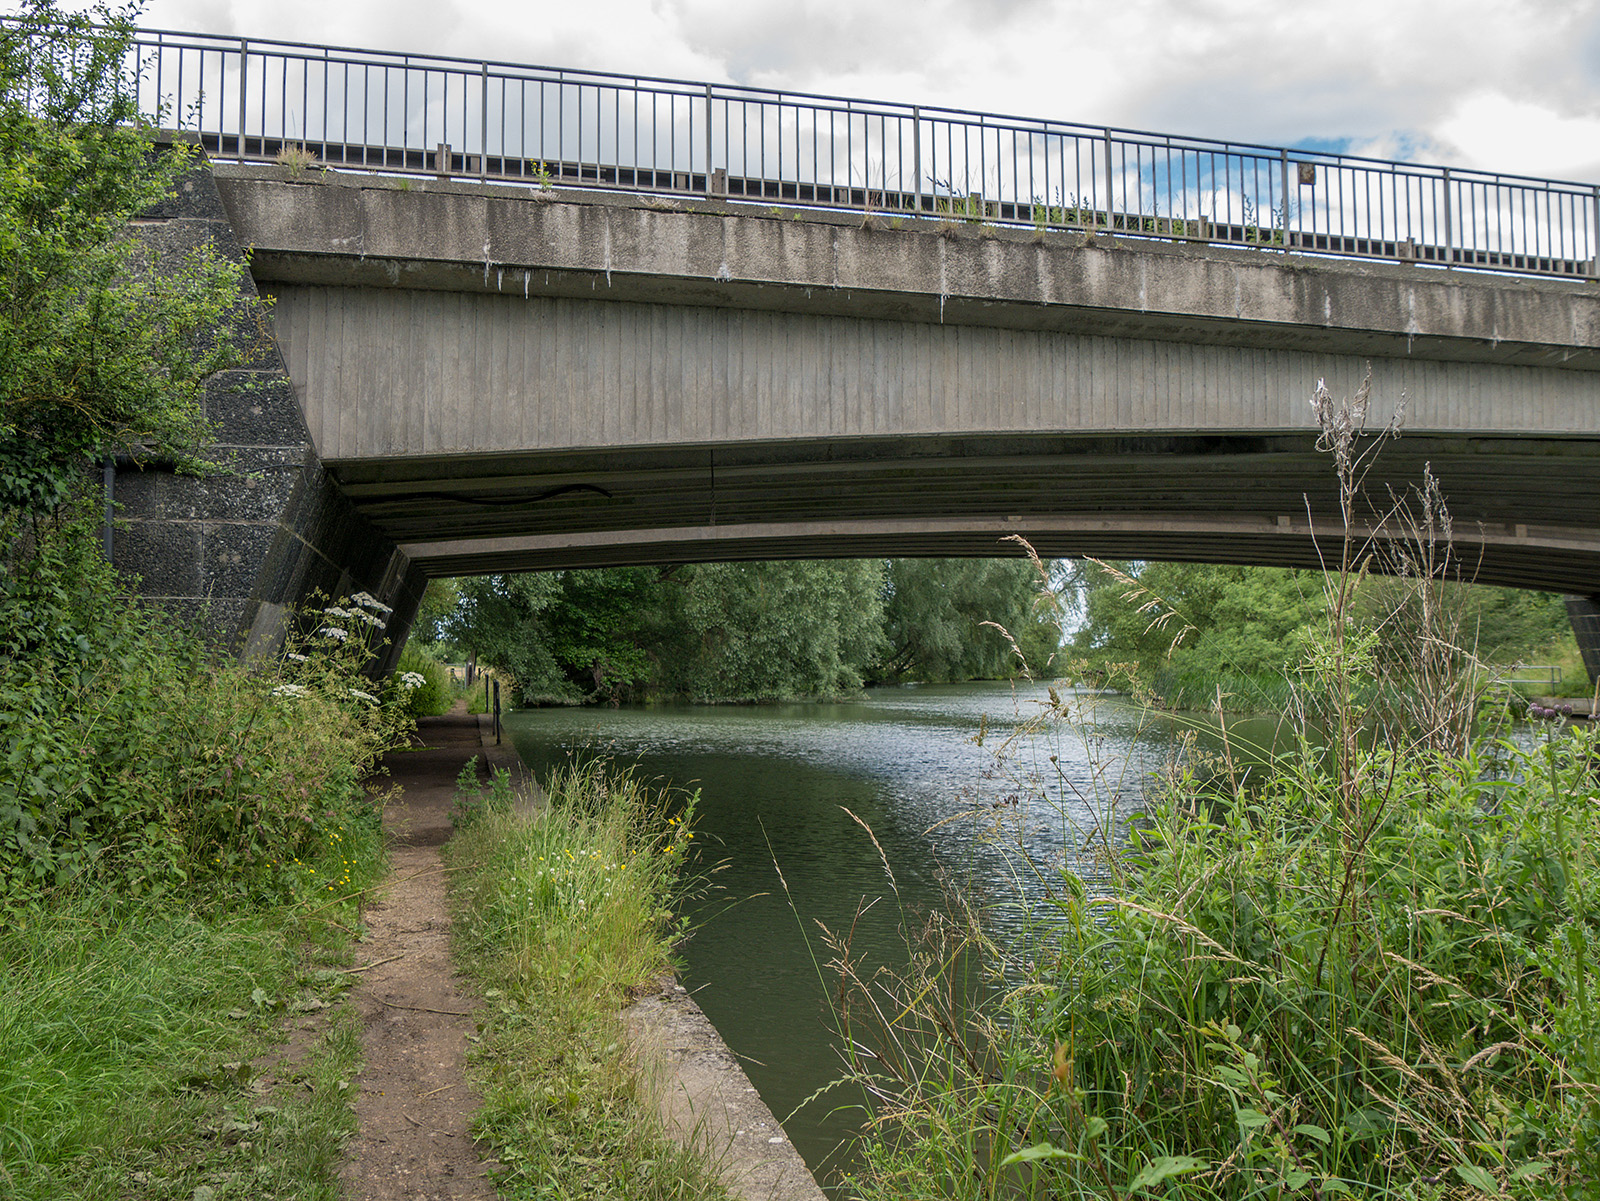 A34 Western Bypass bridge